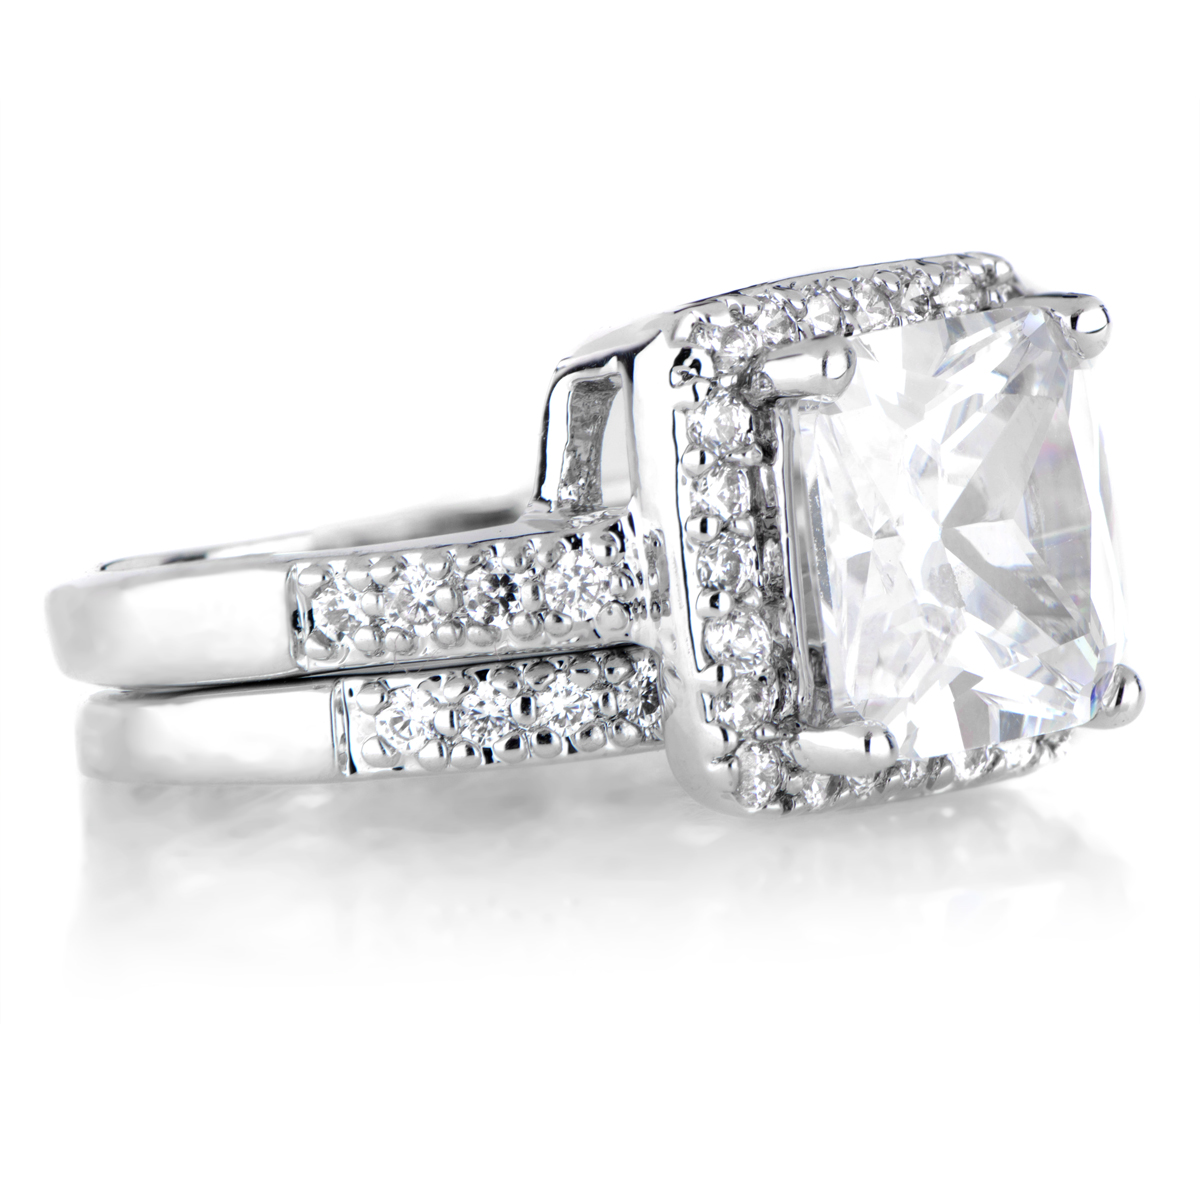 Cubic Zirconia Halo Princess Cut Wedding Ring Set